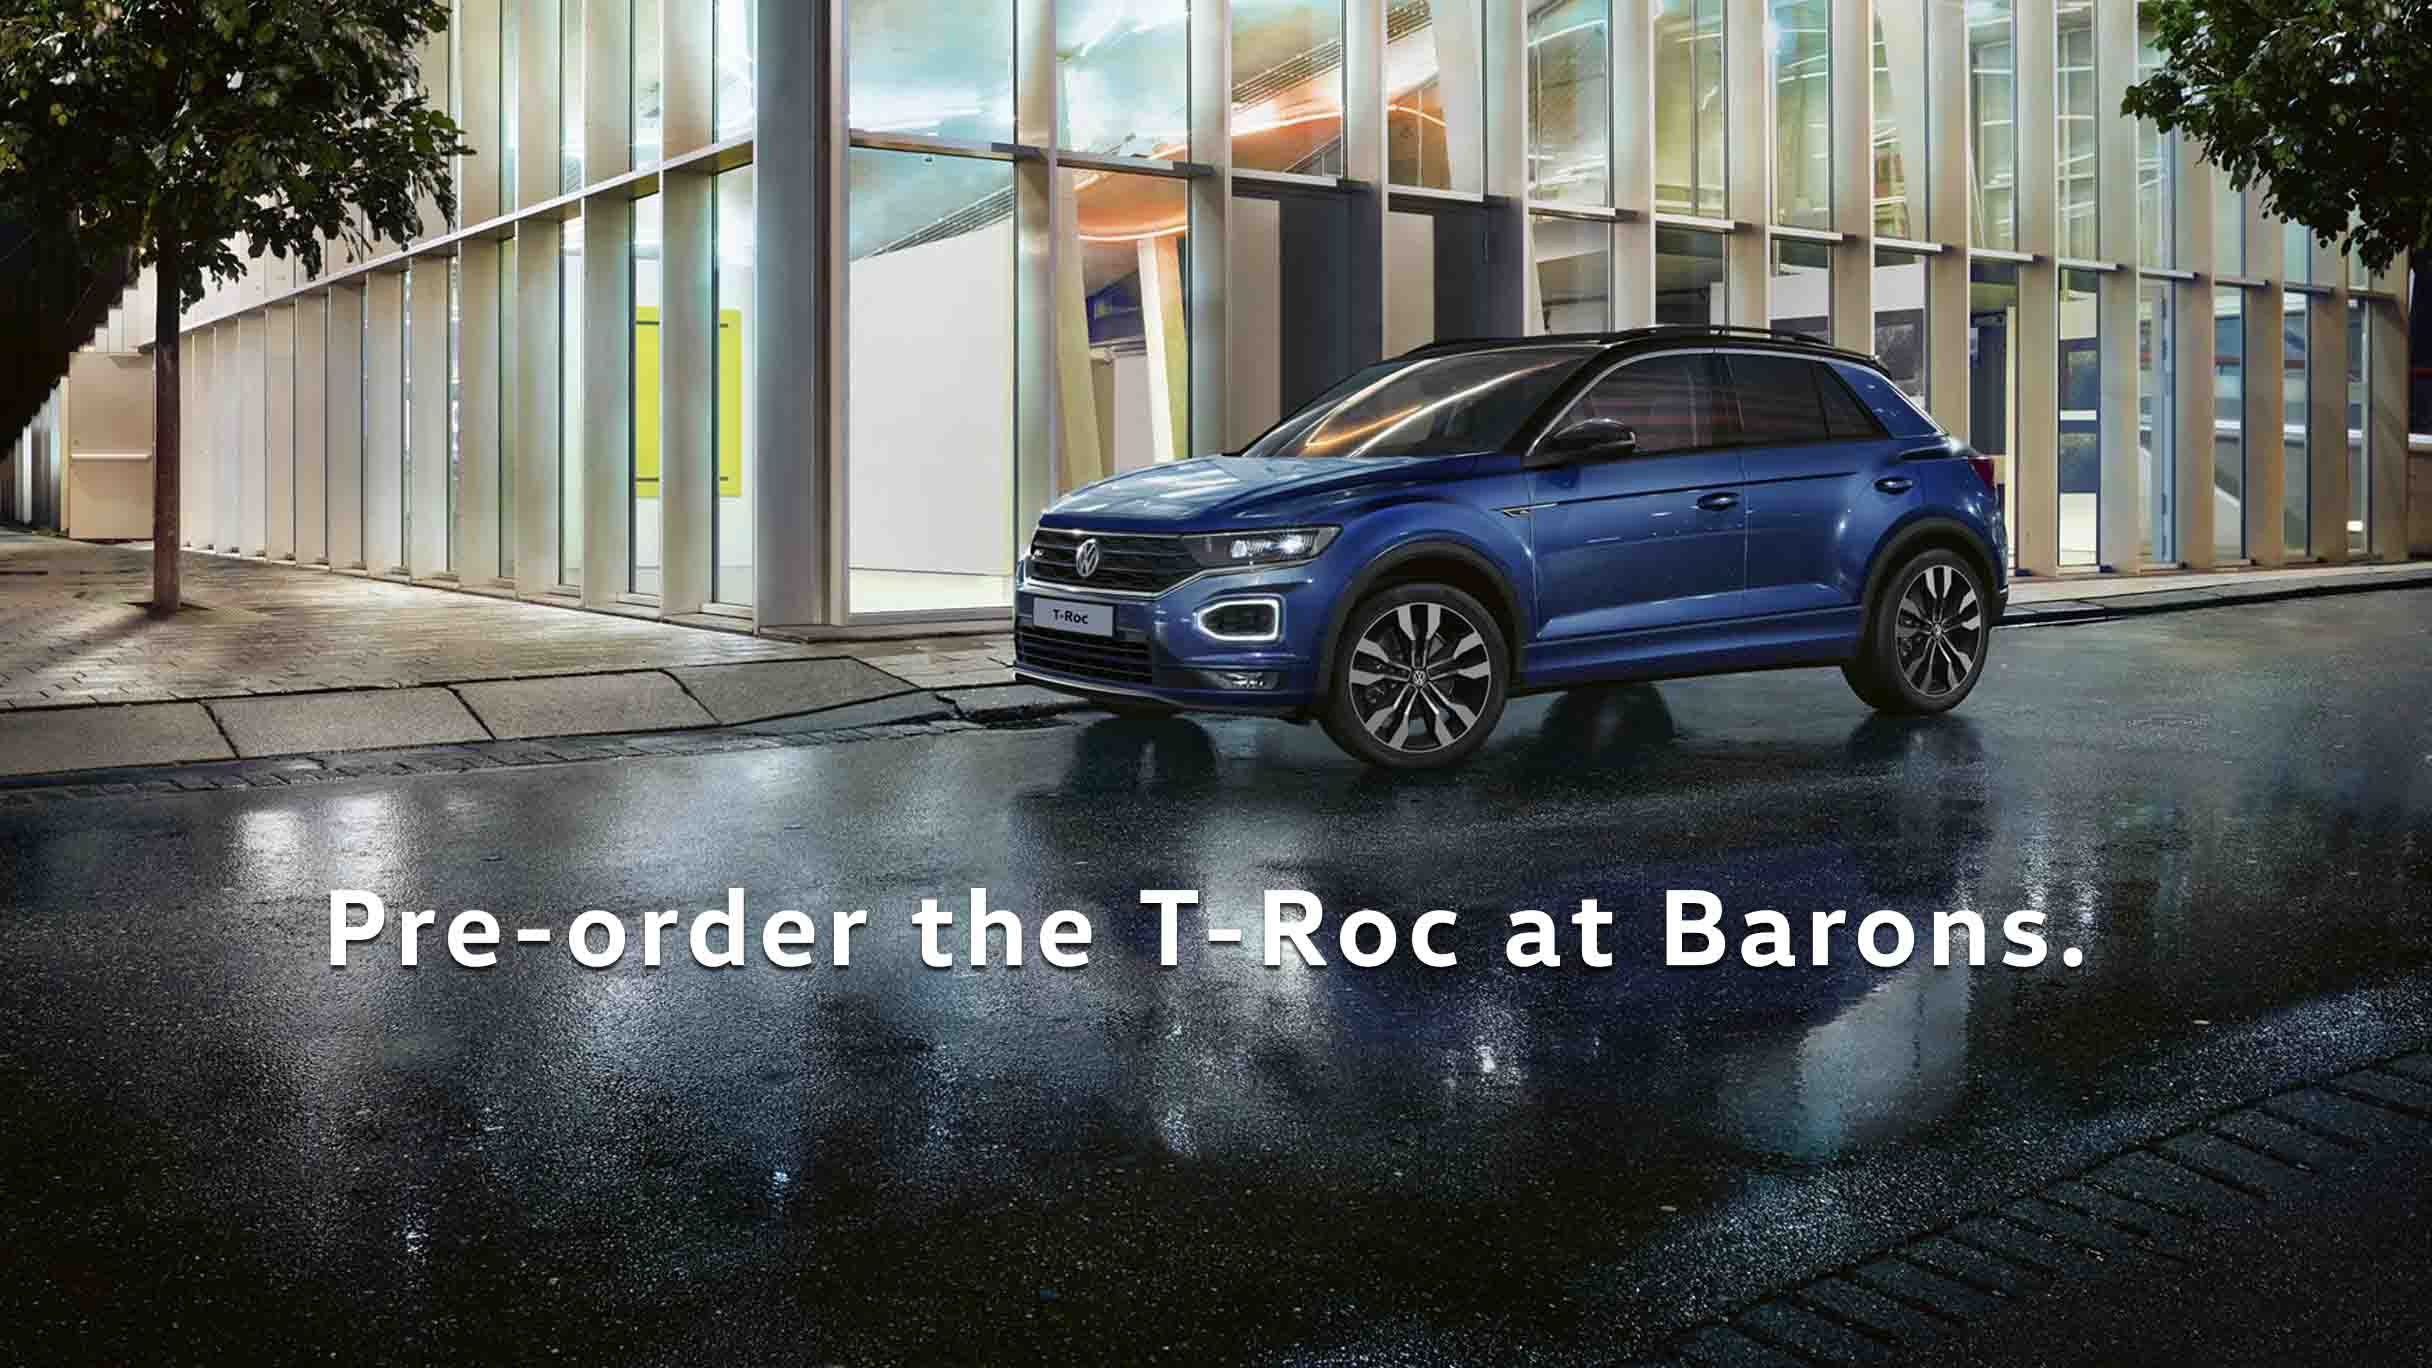 Pre-order a VW T-Roc at Barons Woodmead